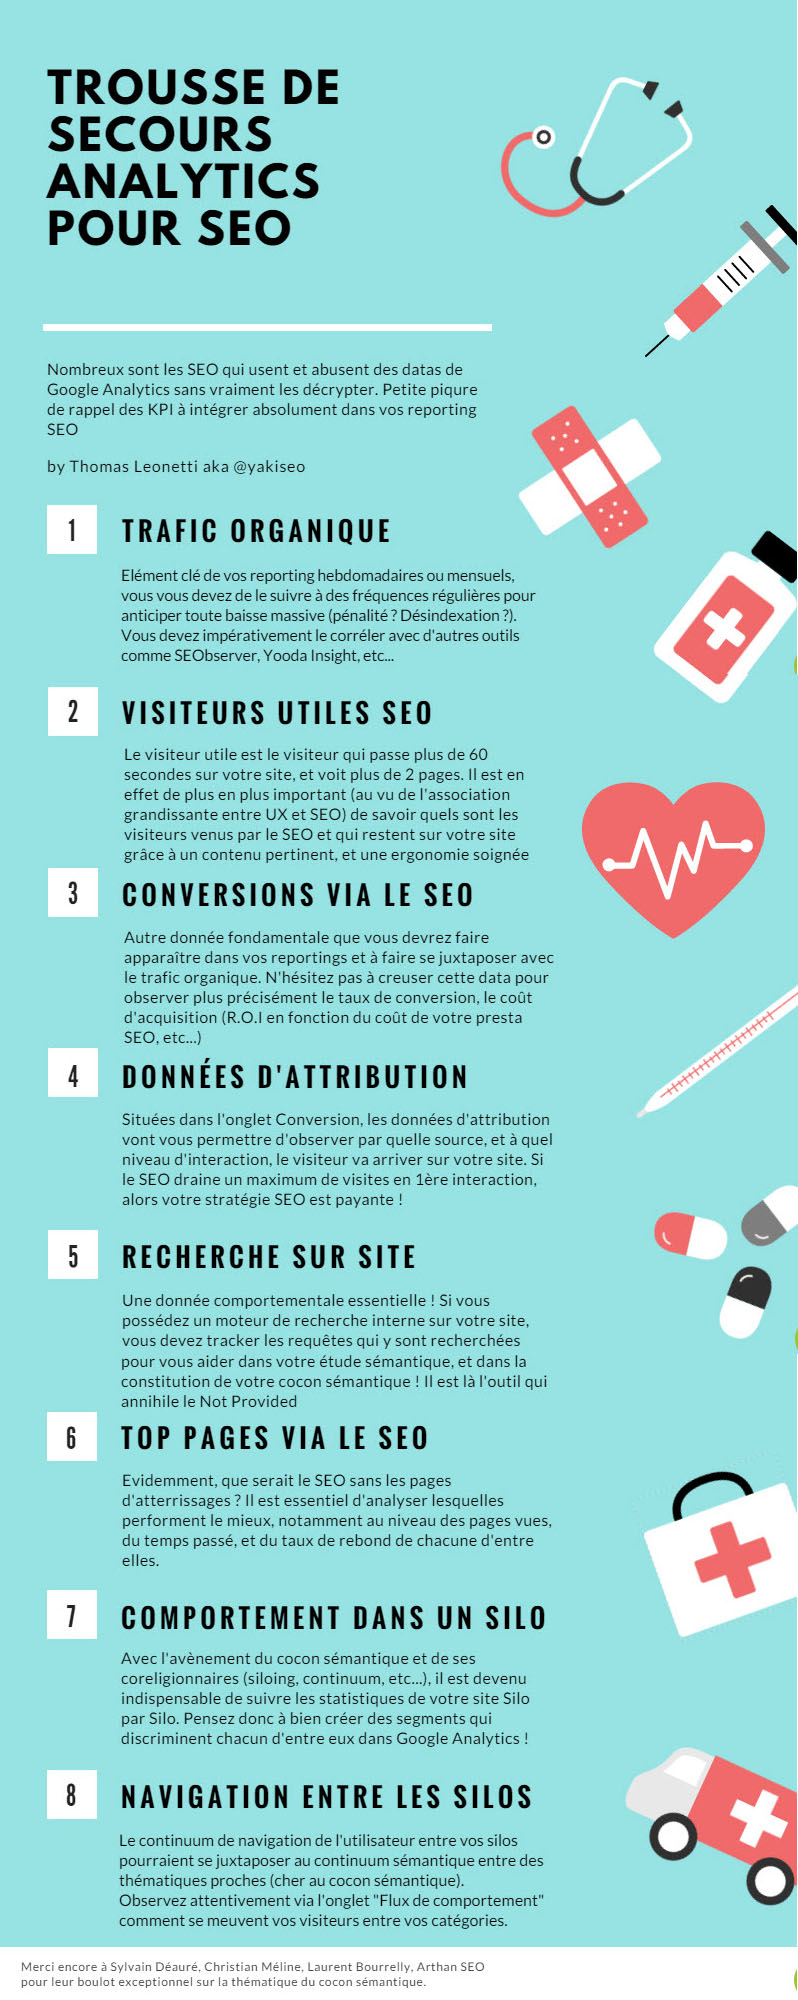 infographie-trousse-secours-analytics-seo